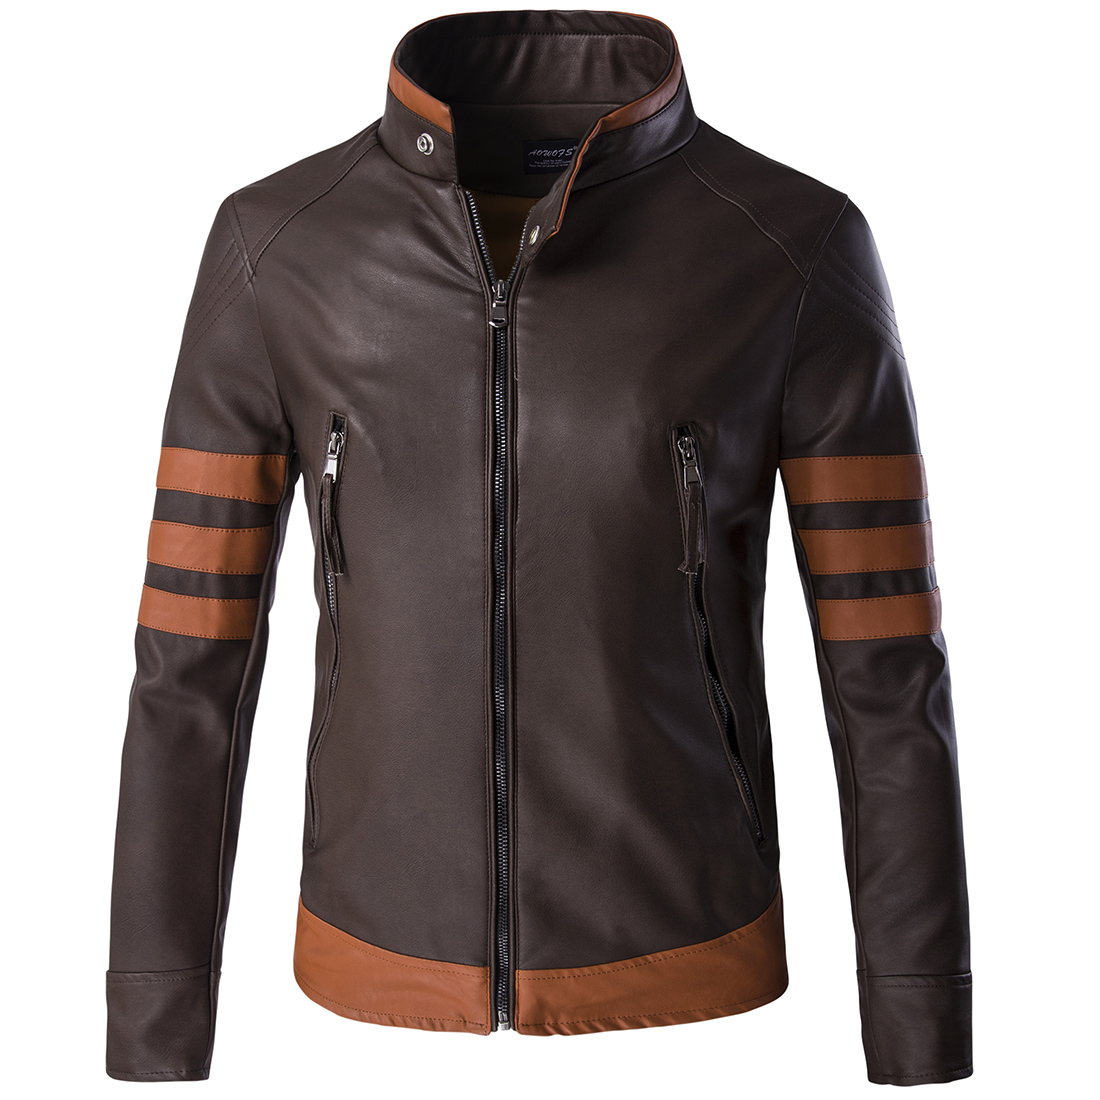 Mens Brown Leather Motorcycle Jacket Promotion-Shop for